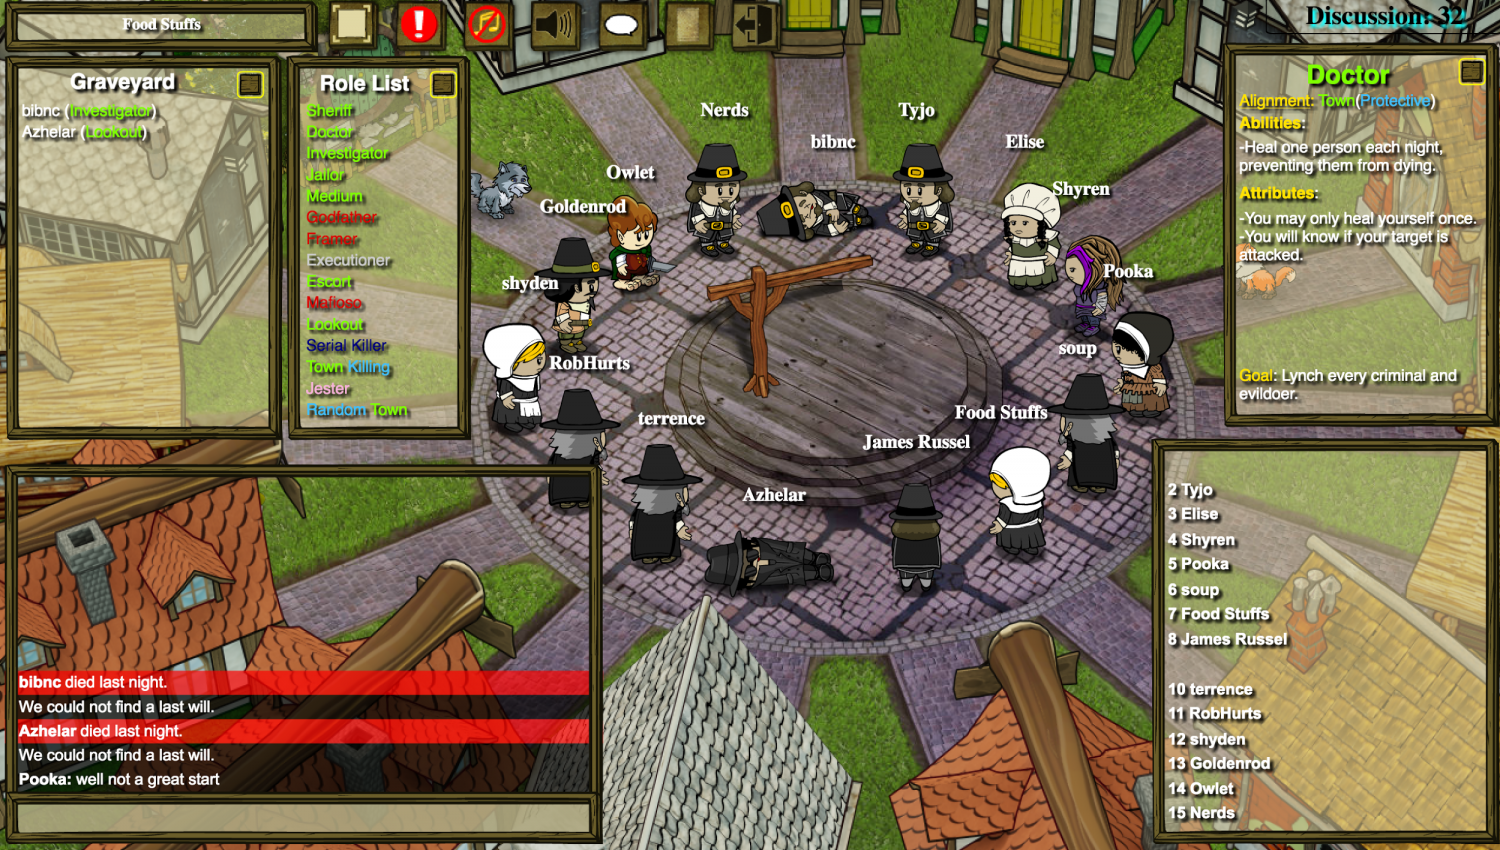 A+screenshot+of+playing+a+game+of+Town+of+Salem+as+the+Doctor.